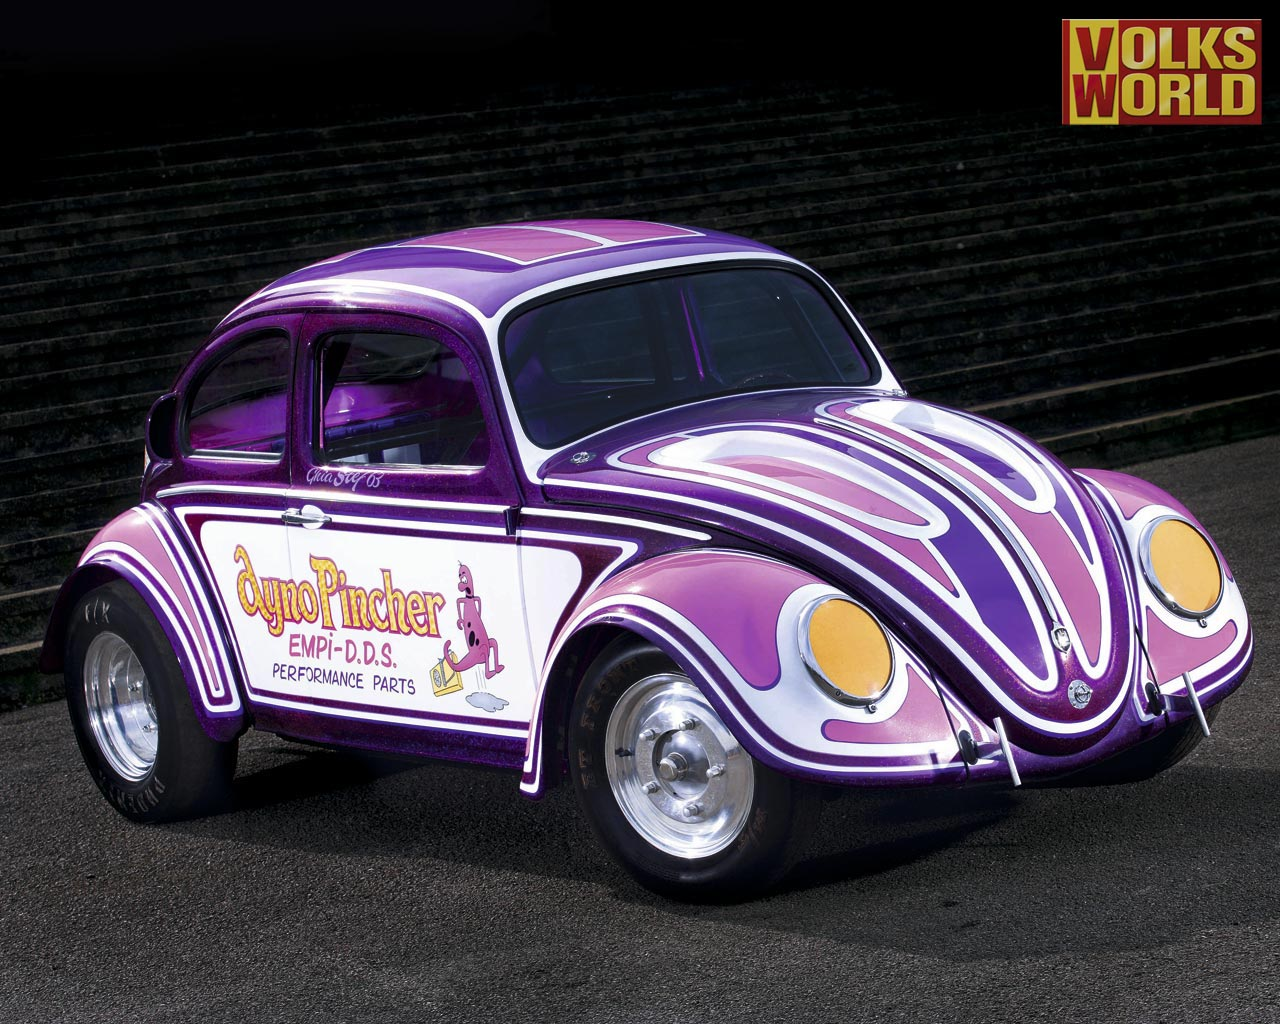 Volkswagen Beetle Wallpapers Vdub Newscom 1280x1024